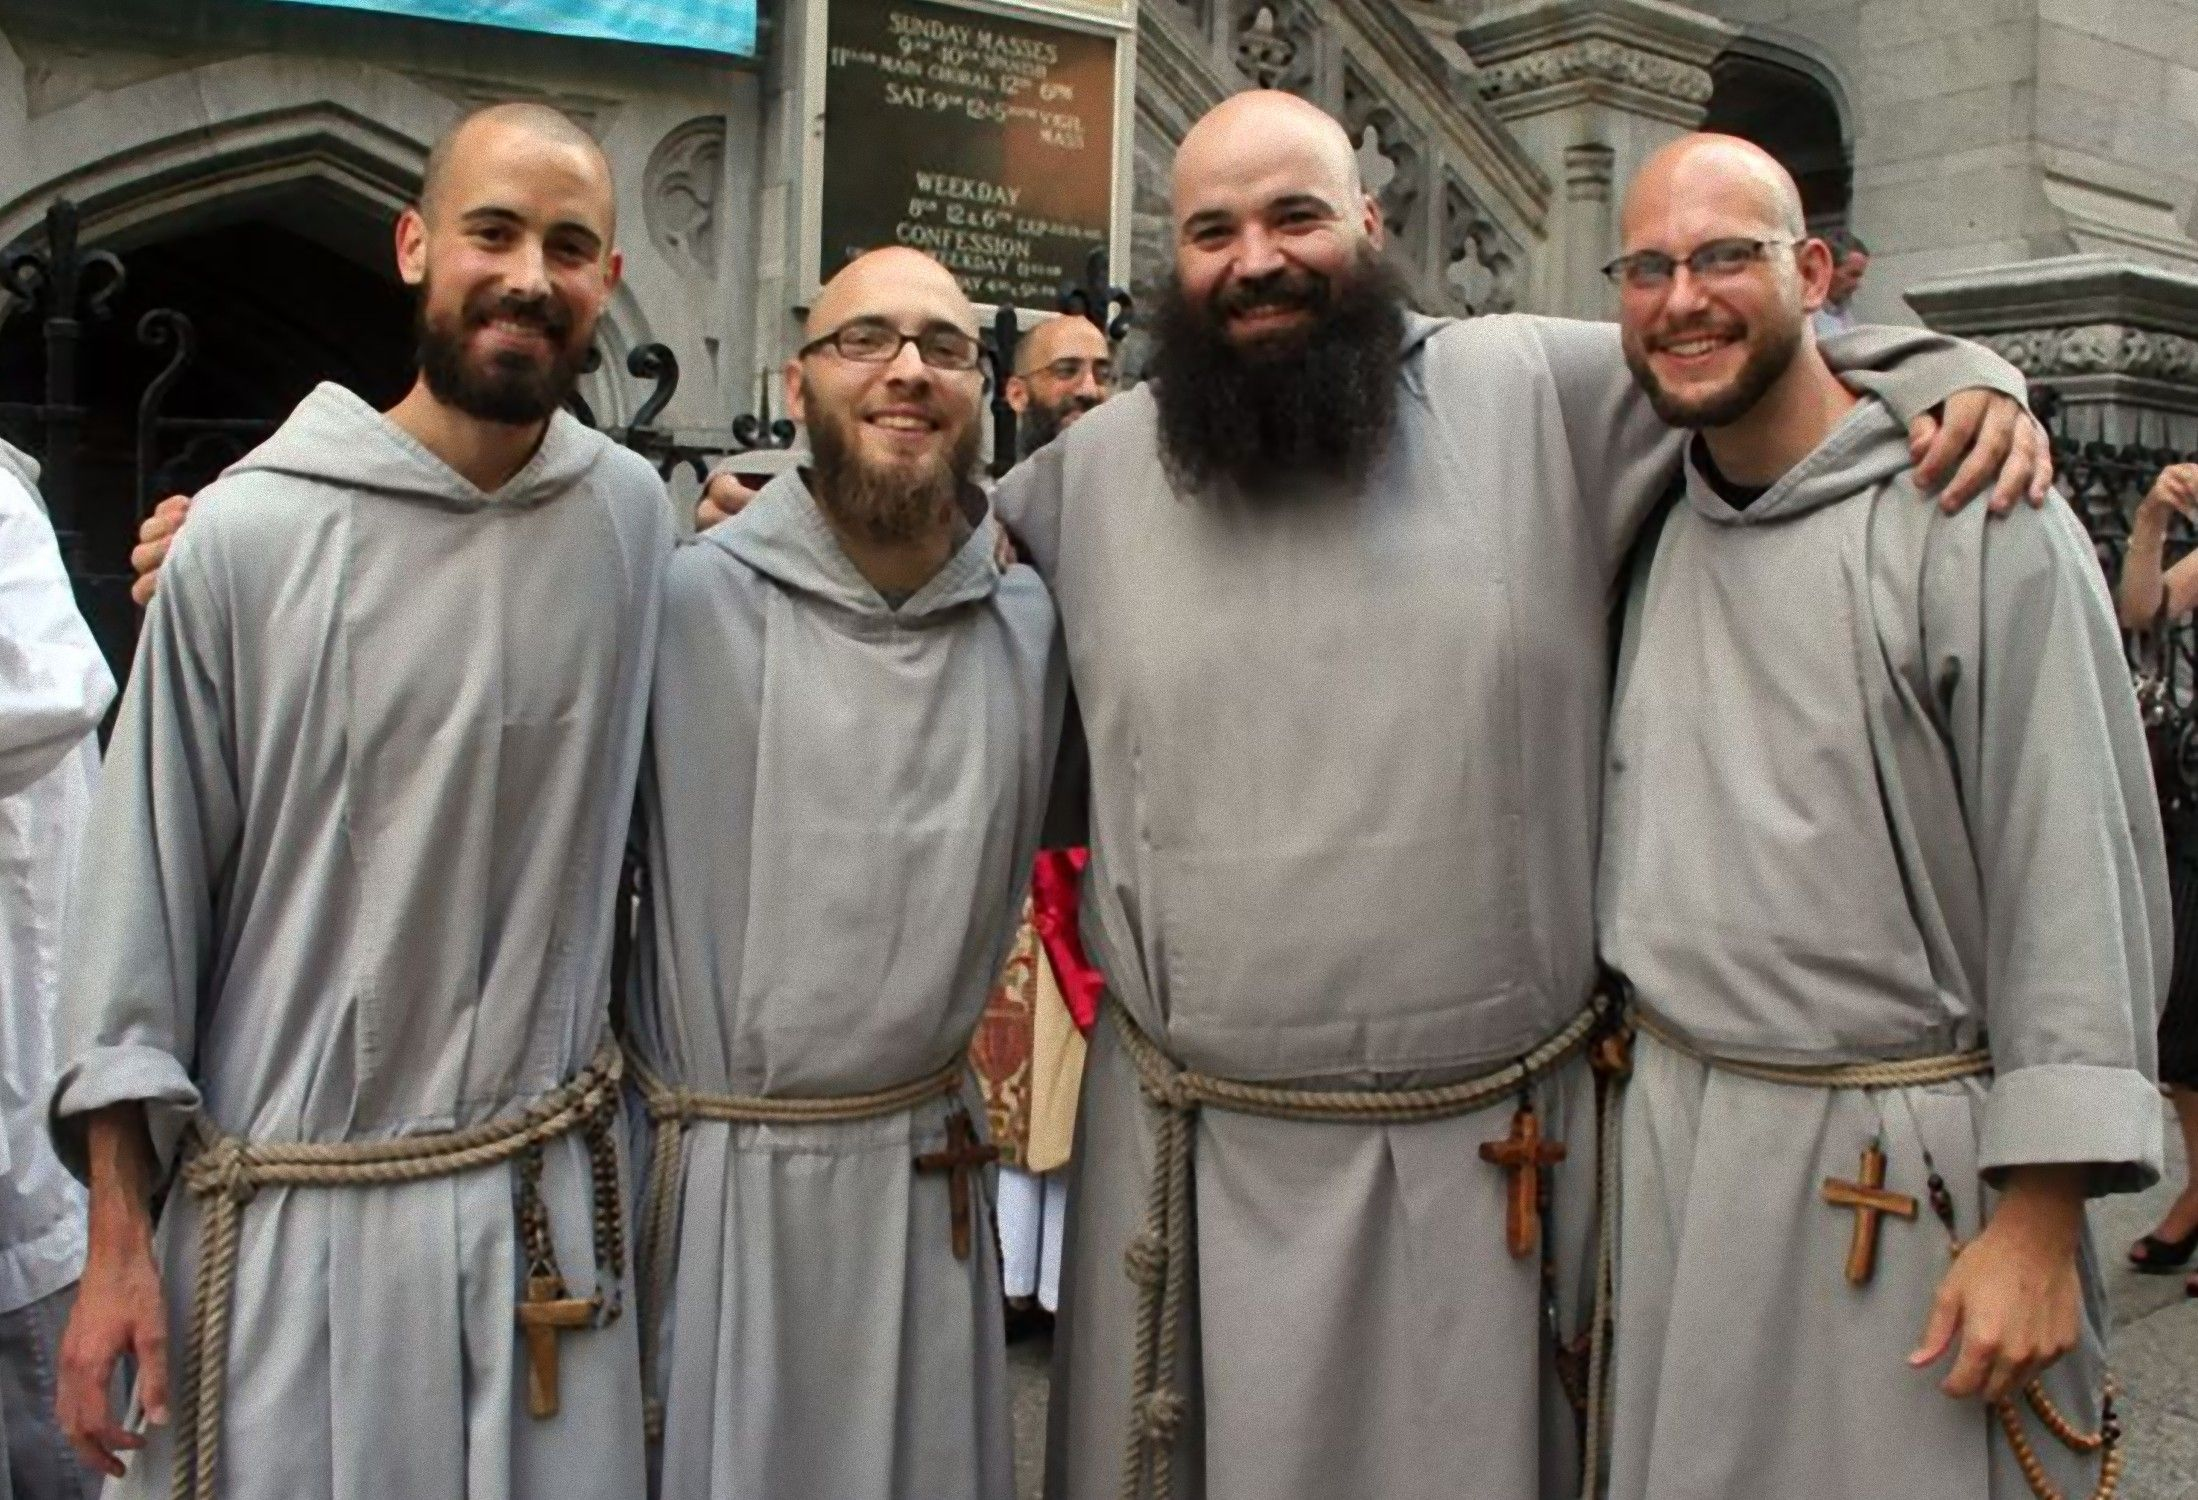 Franciscan Friars Of The Renewal Christian Monks Nuns